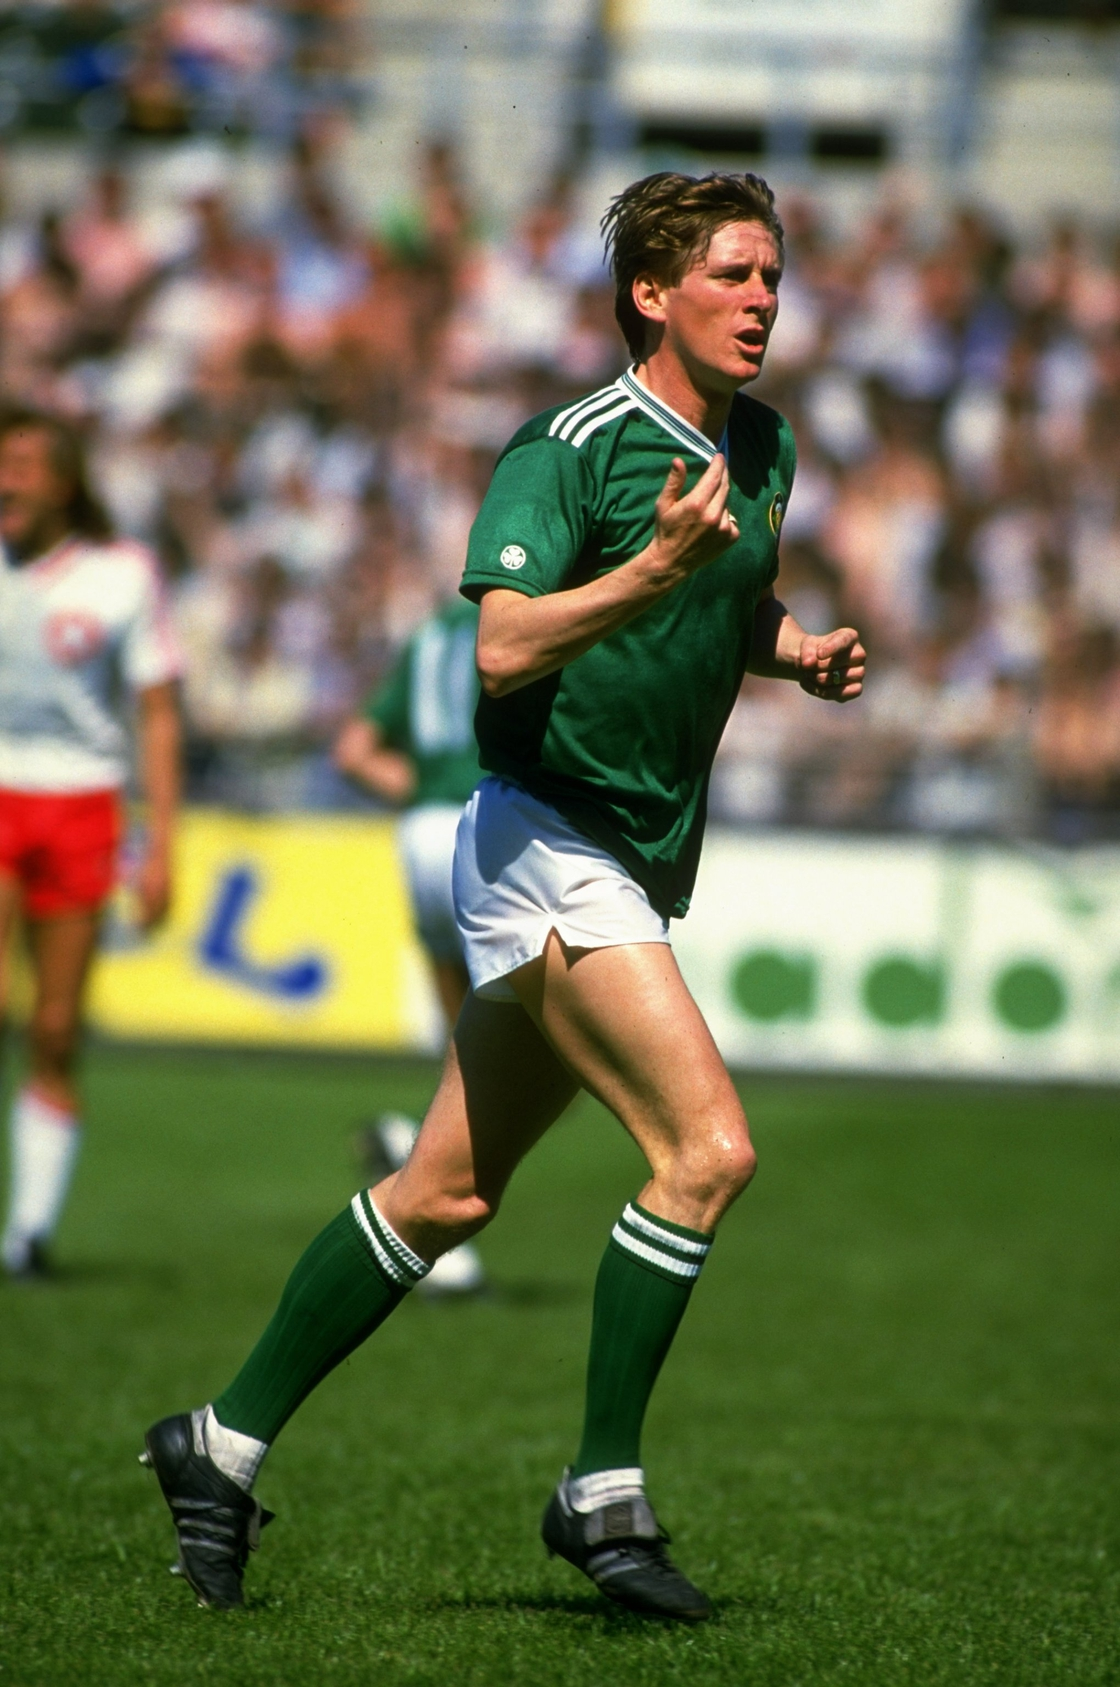 Image - Gerry Daly in action during Italia 90 qualifying